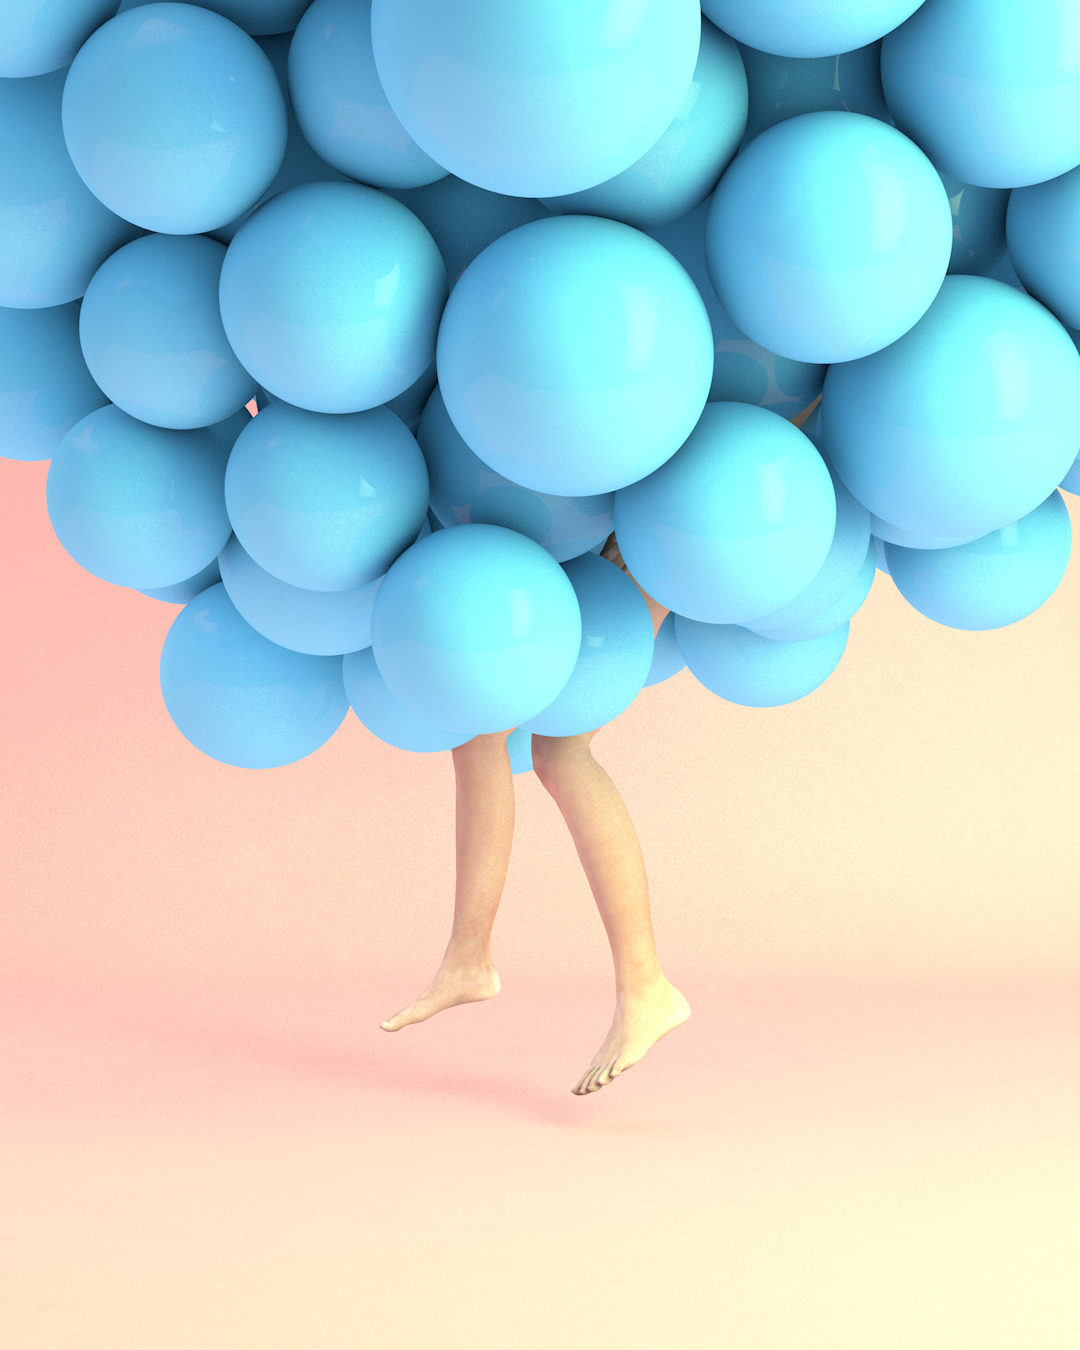 Sweep feet - 3d, 3dart, 3dartist - namhkheem | ello